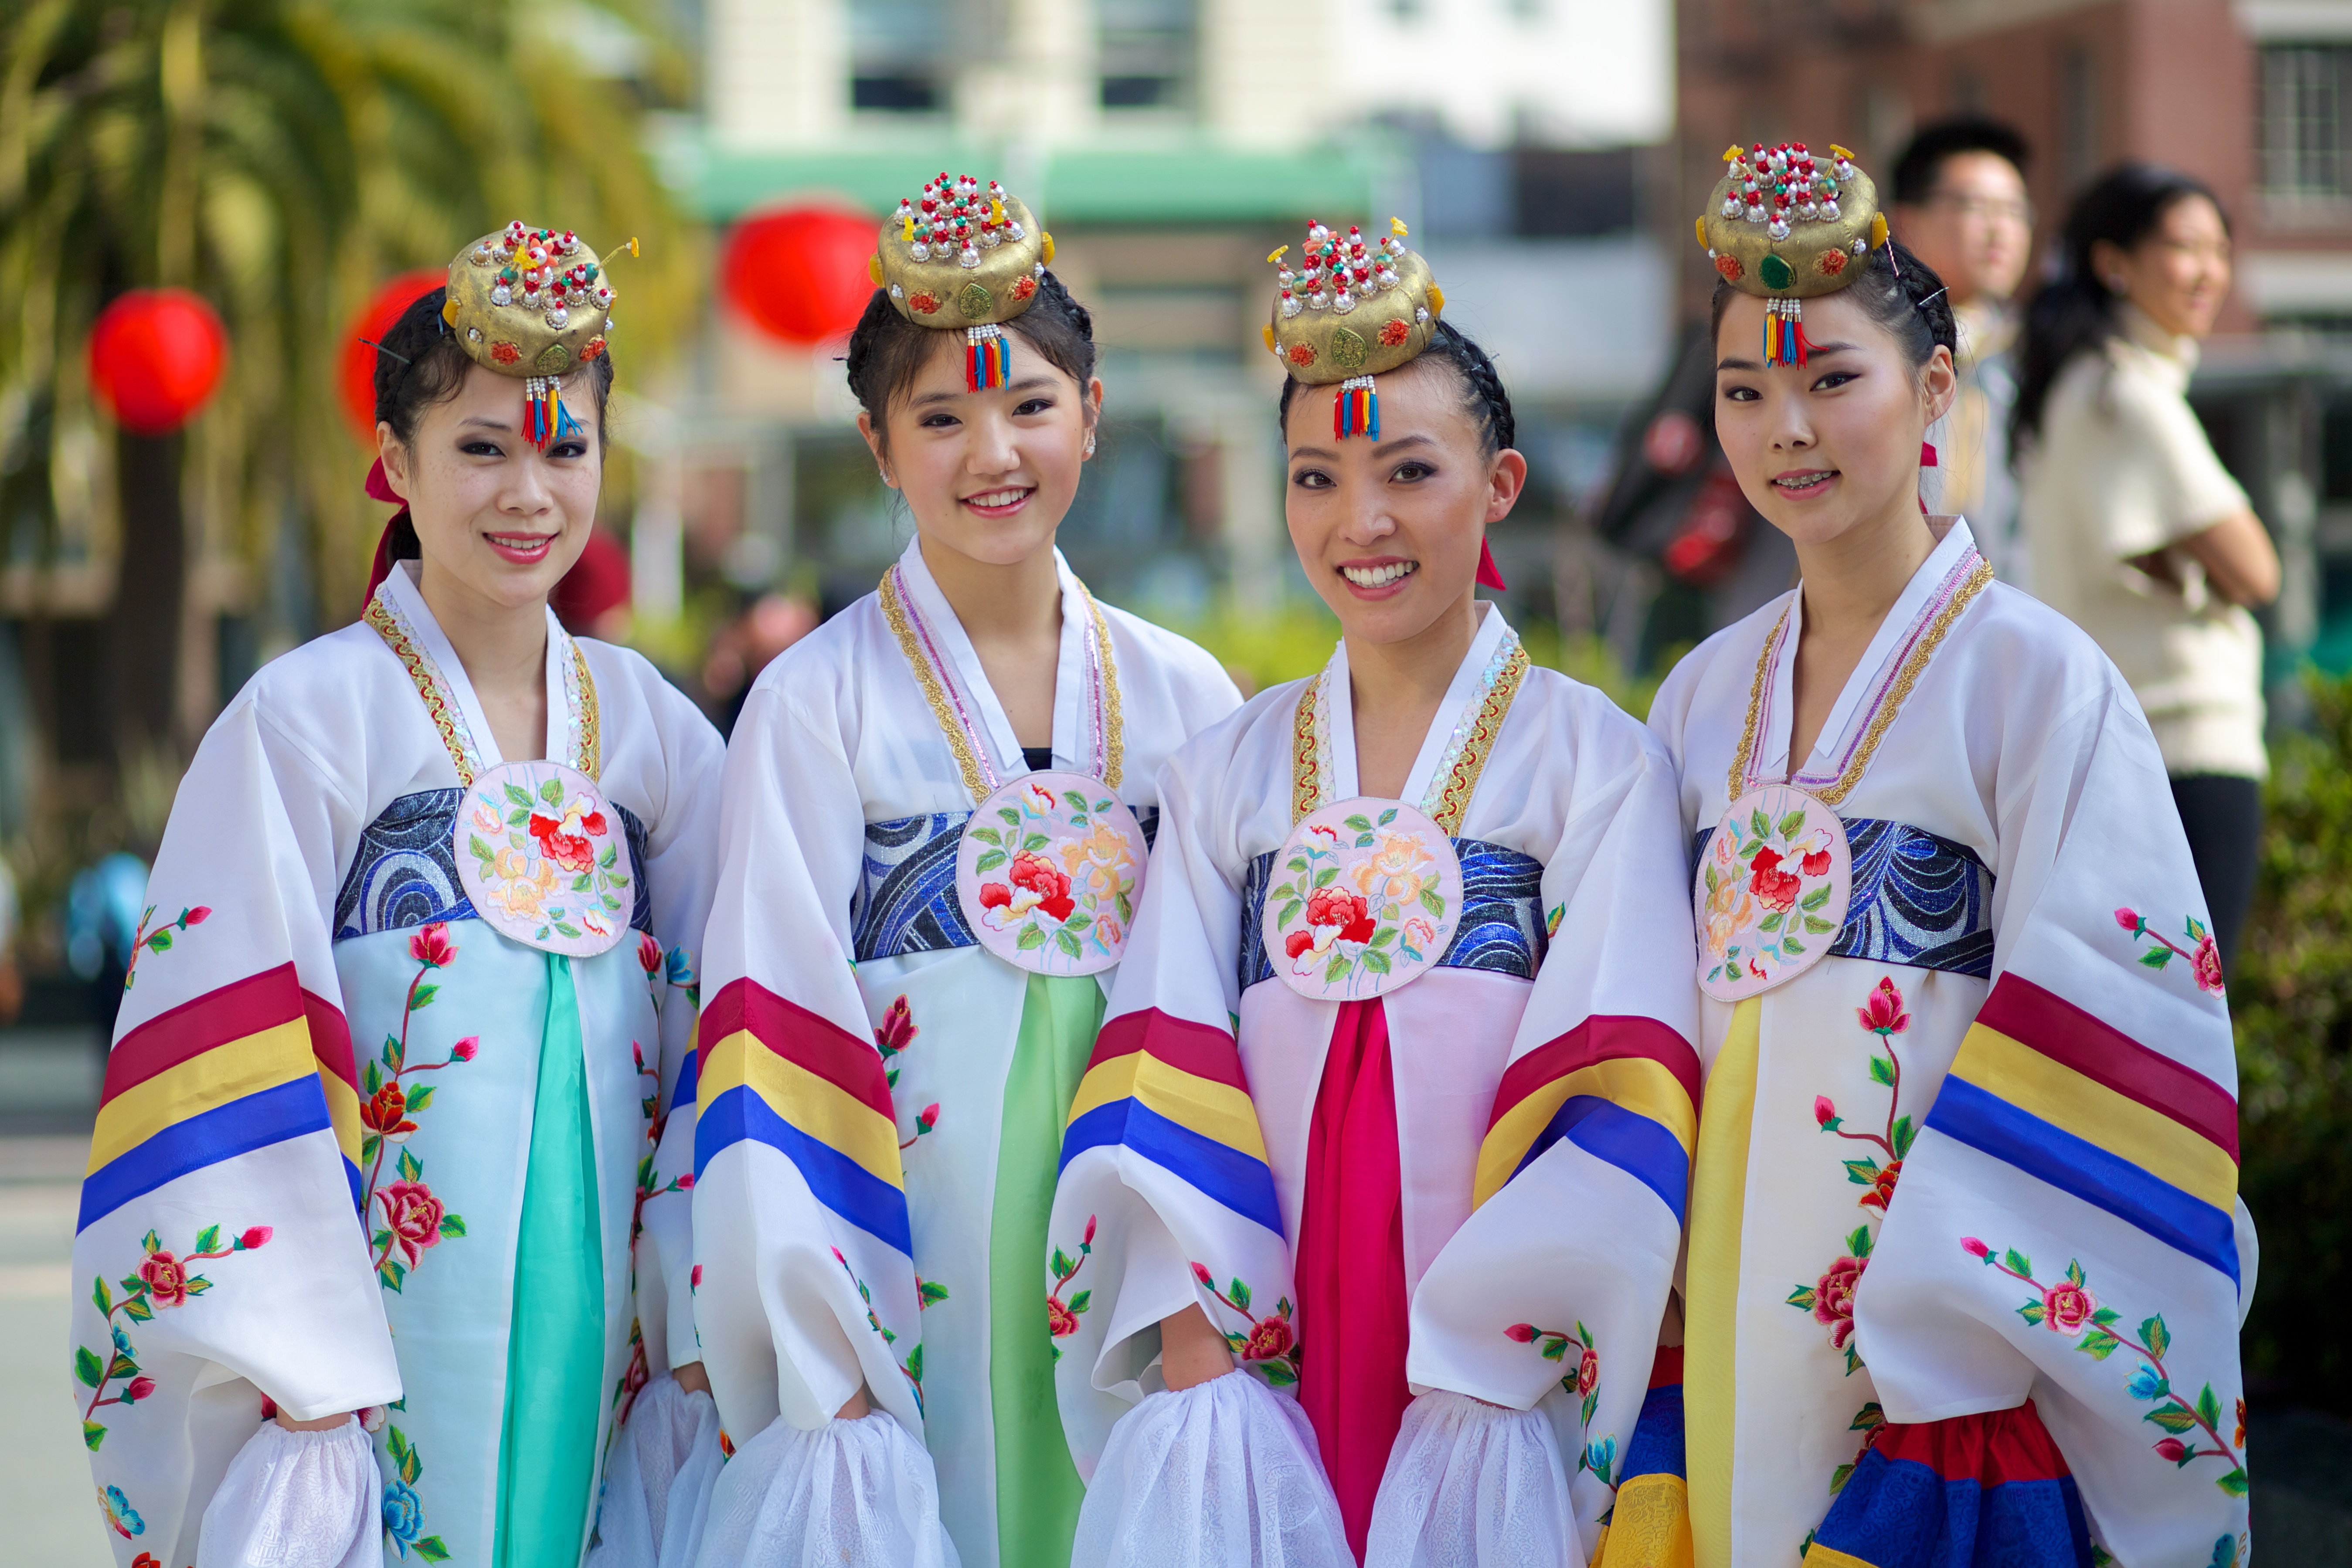 korean immigration Reviews on korean immigration lawyer in los angeles, ca - jane oak & associates pc, law offices of david inpyo lee & associates, law offices of victoria j suh, law offices of angela suh, law offices of sonia figueroa-lee, bo lee law group, mc.